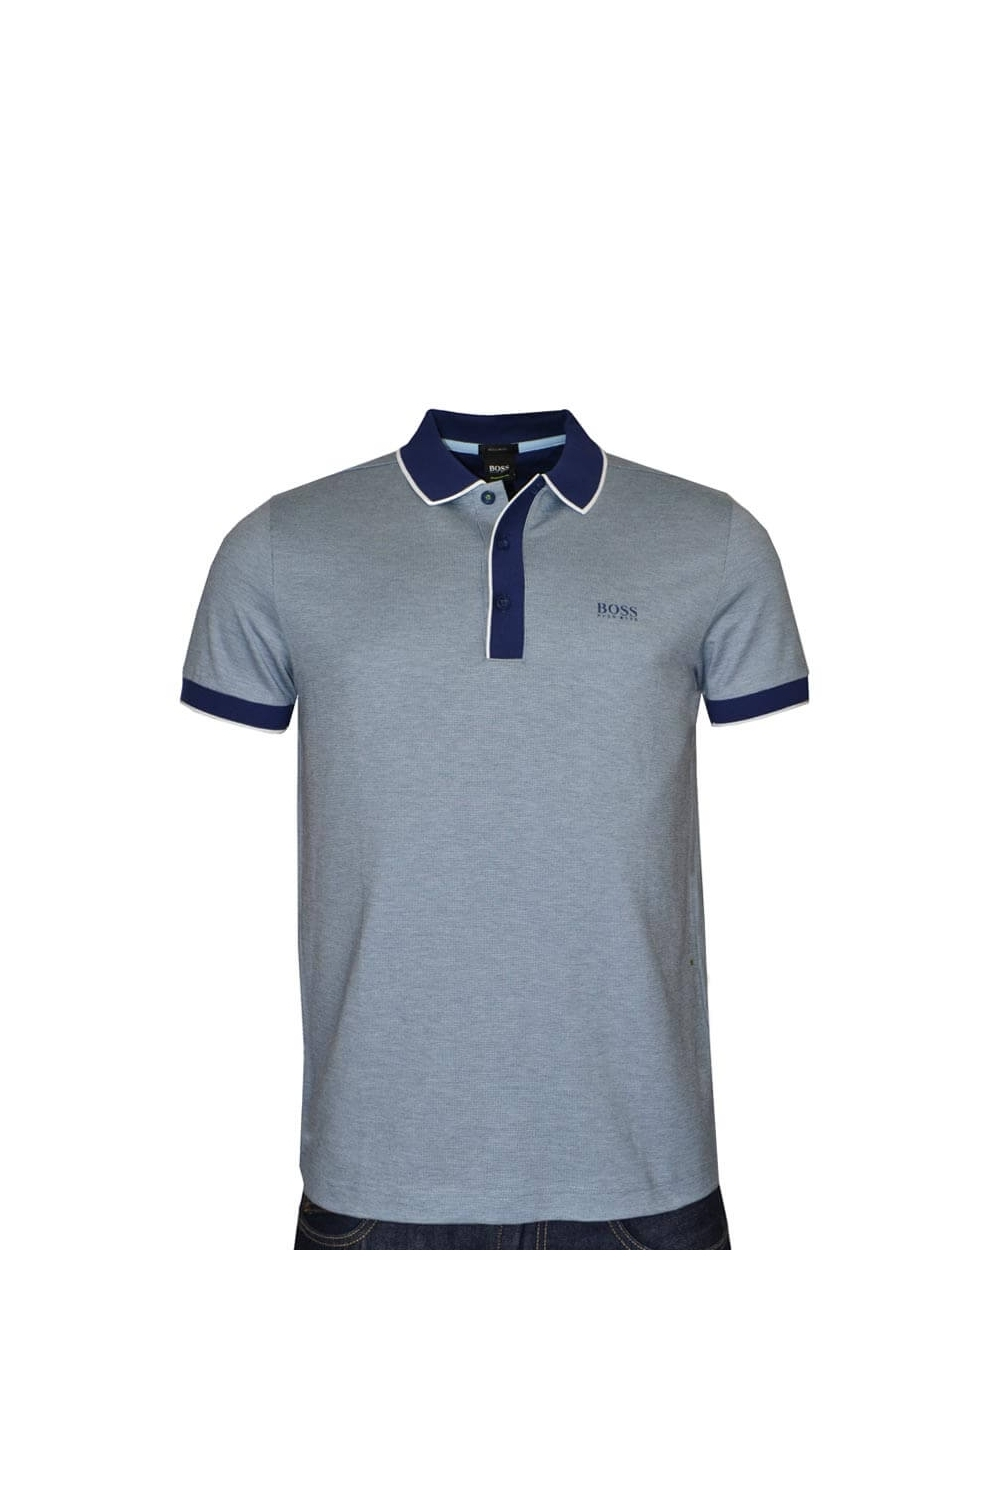 24582400 Hugo Boss Green Paddy Polo 5 in Blue 50392665 404